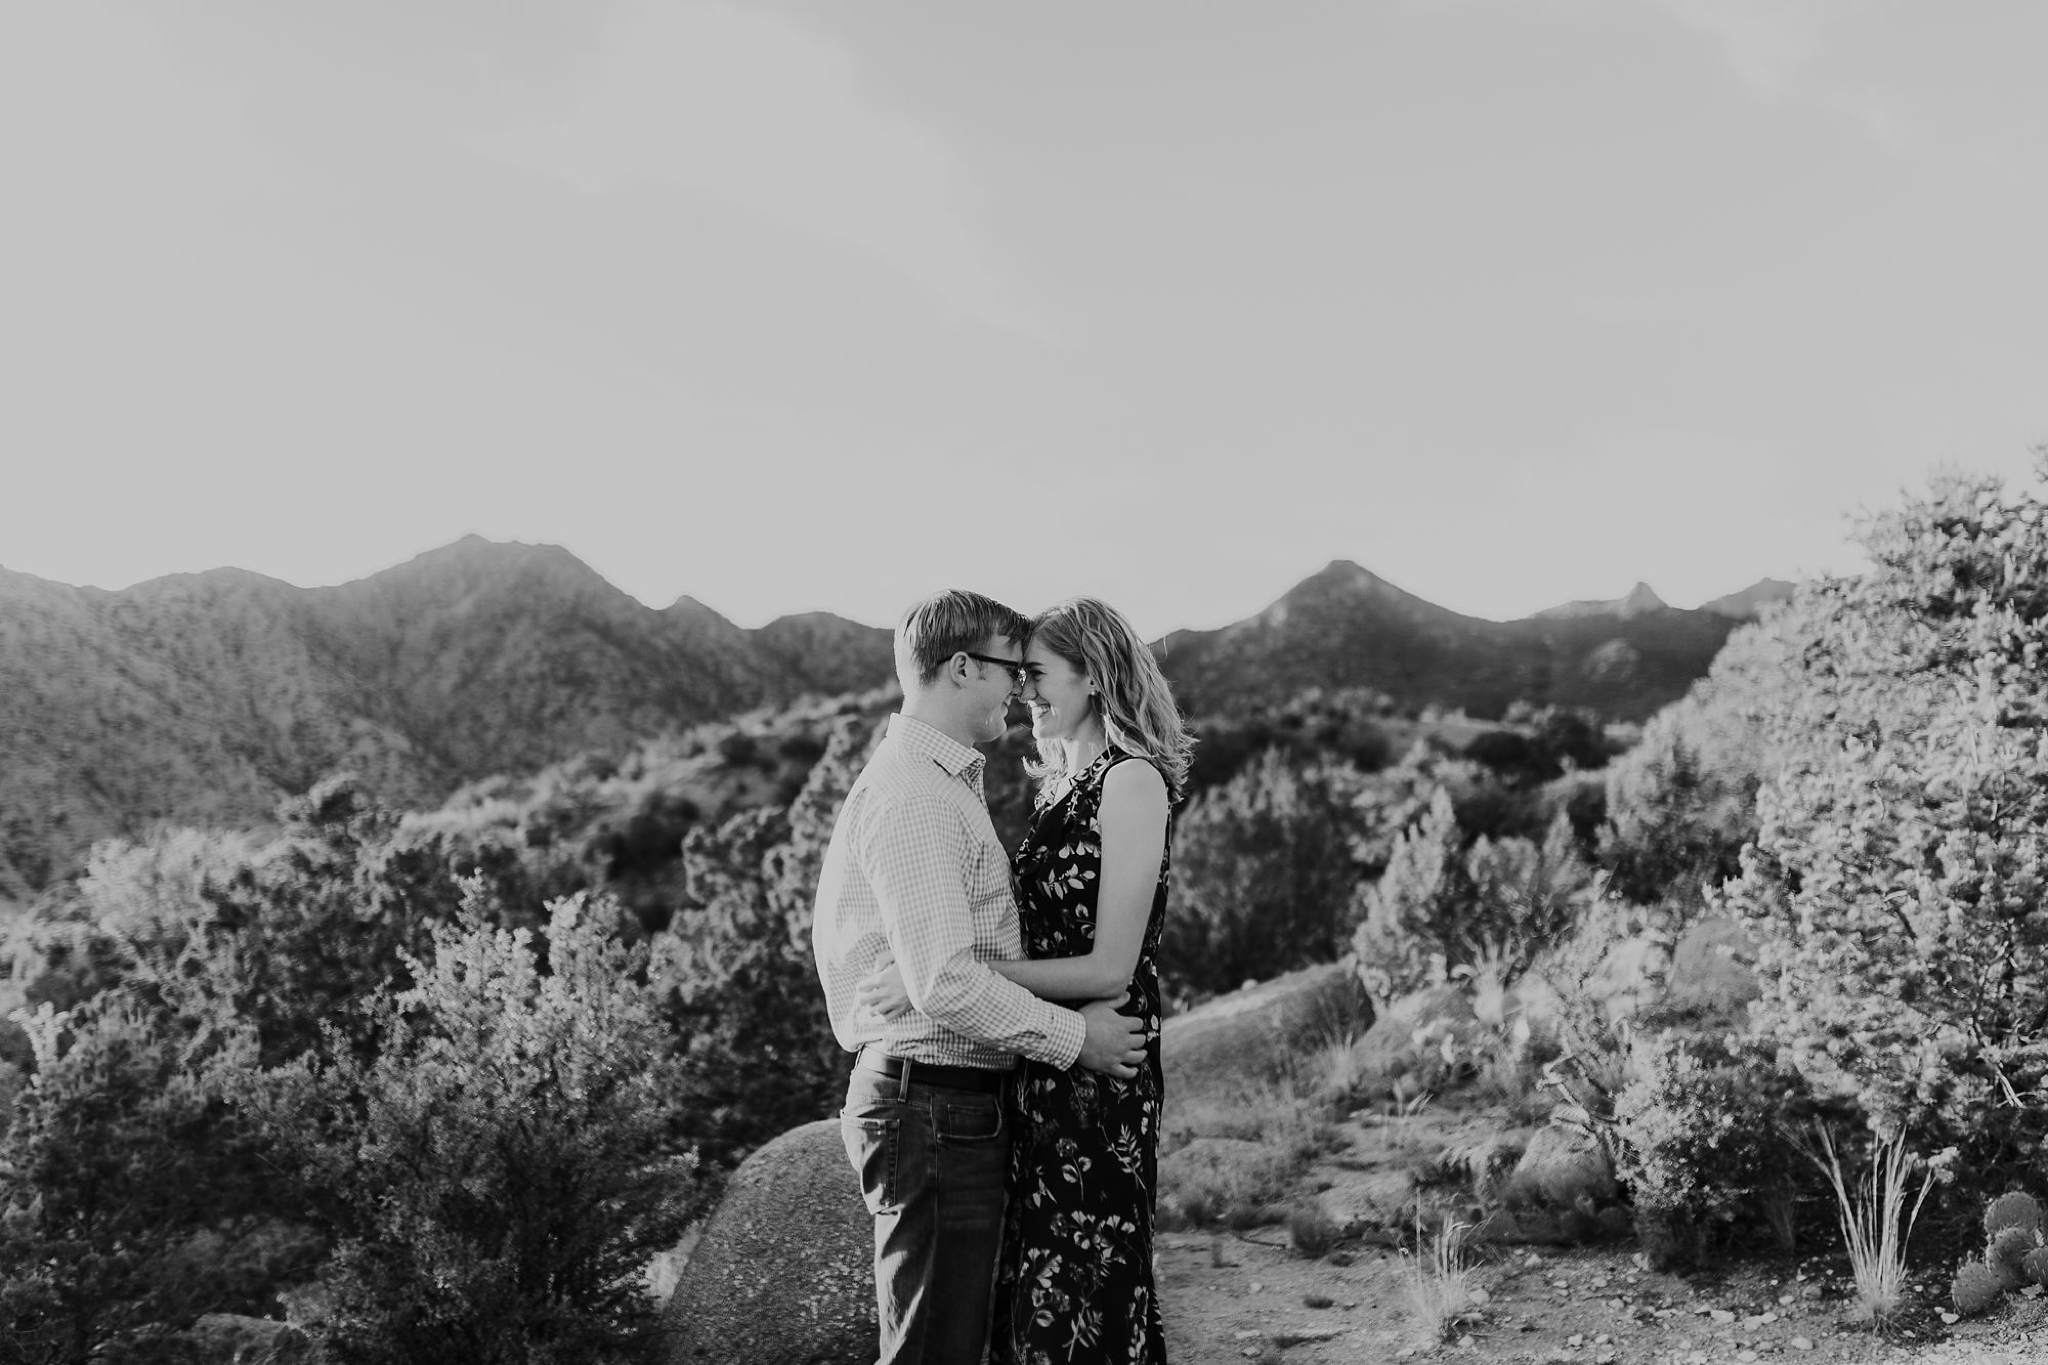 Alicia+lucia+photography+-+albuquerque+wedding+photographer+-+santa+fe+wedding+photography+-+new+mexico+wedding+photographer+-+new+mexico+wedding+-+new+mexico+engagement+-+mountain+engagement+-+casa+perea+wedding_0004.jpg